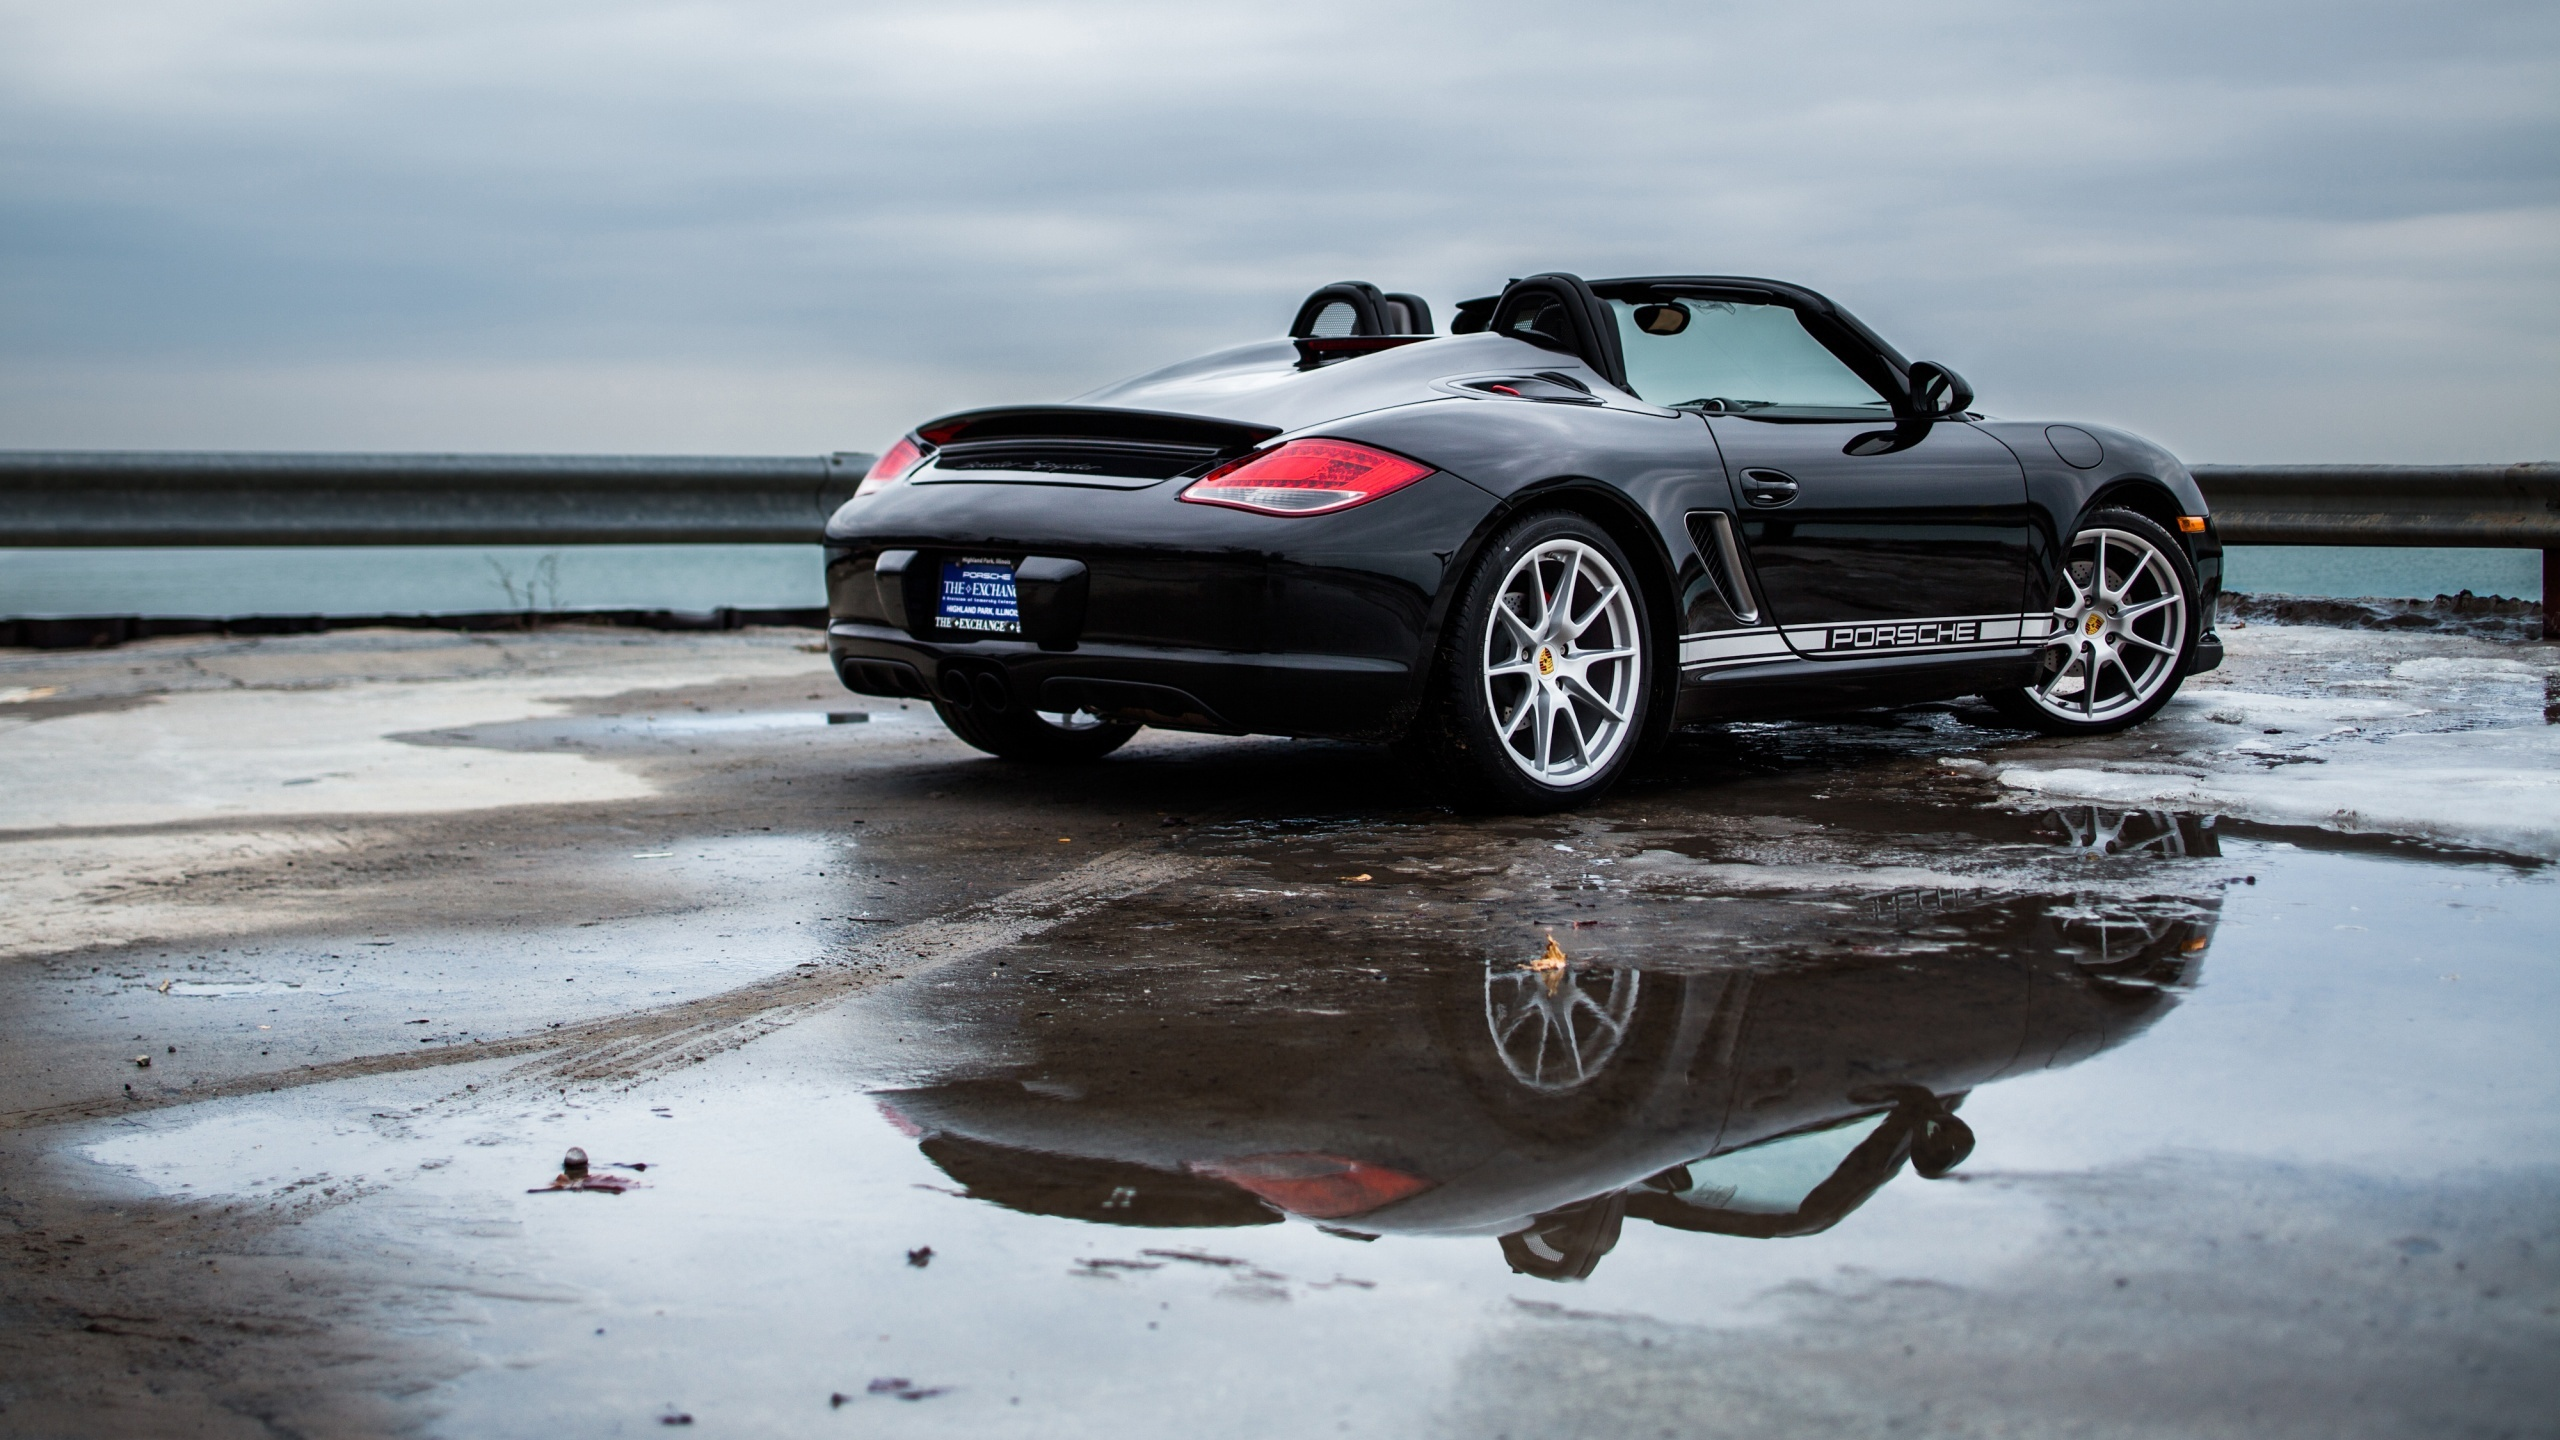 Cool Sport Cars Wallpaper For Mobile 25 Porsche Boxster Hd Wallpapers Backgrounds Wallpaper